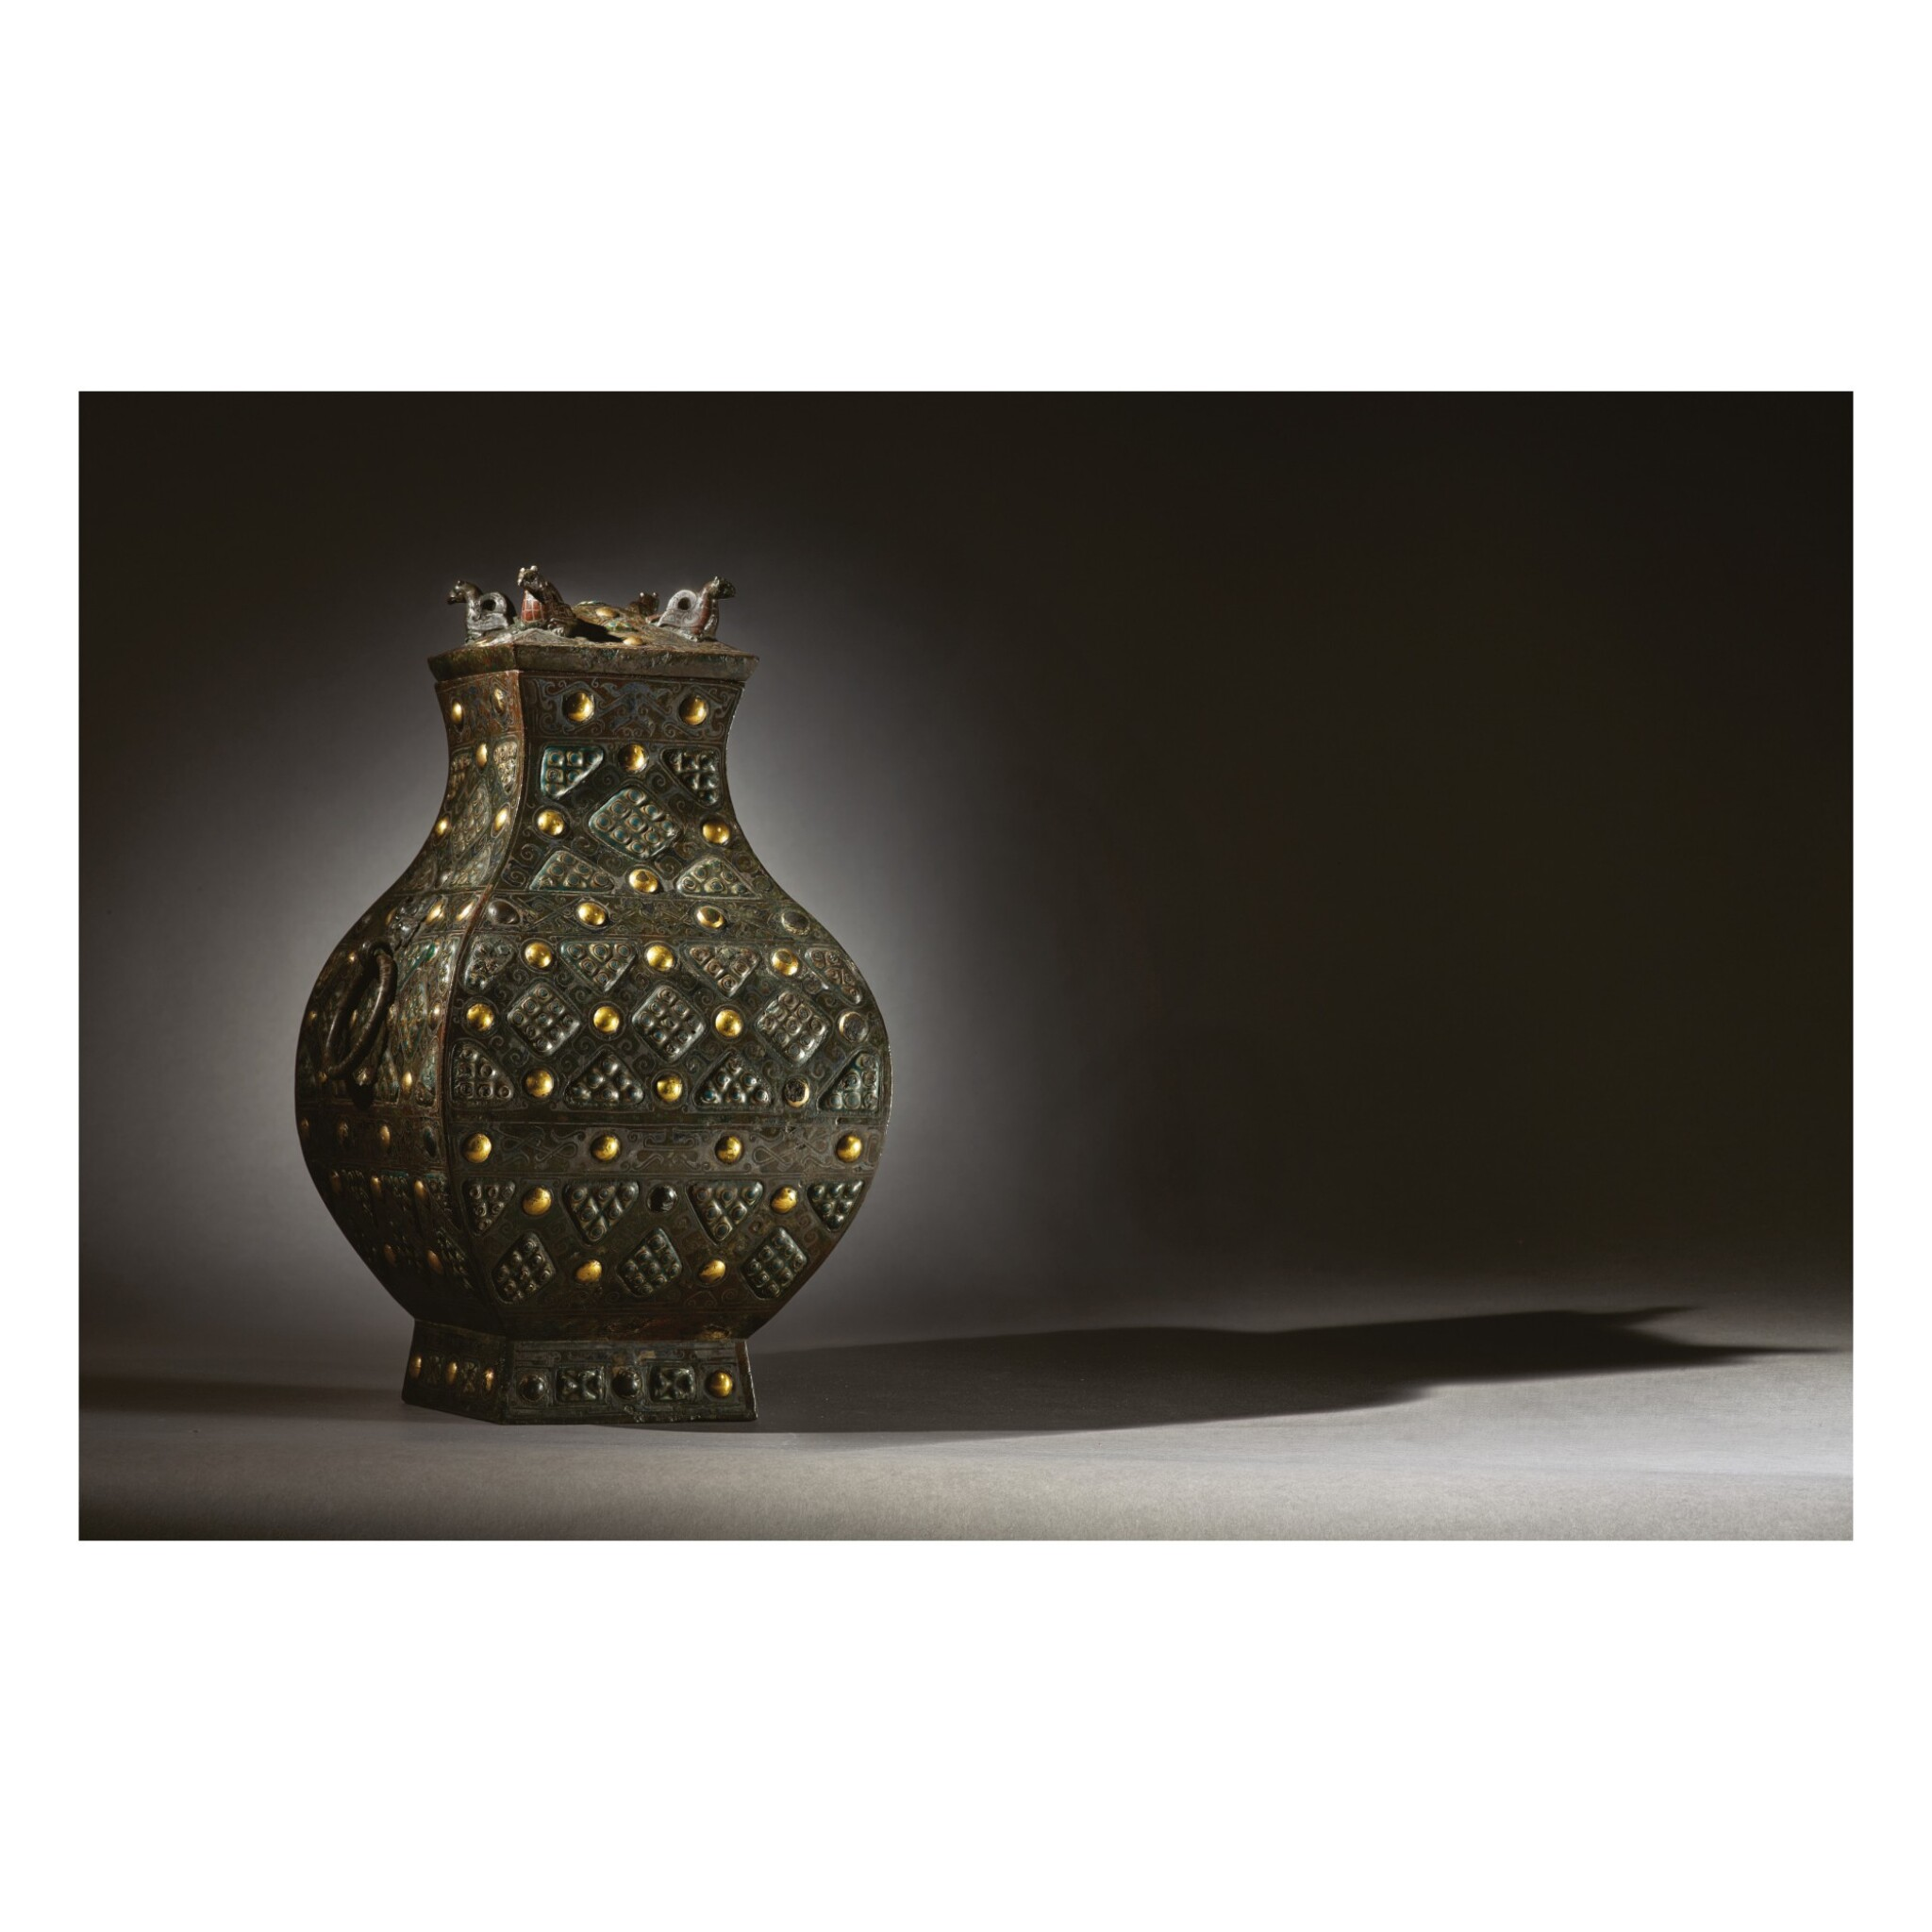 View 1 of Lot 578. AN EXCEPTIONALLY RARE AND IMPORTANT GOLD, SILVER AND GLASS-EMBELLISHED BRONZE VESSEL (FANG HU),  WARRING STATES PERIOD, 4TH / 3RD CENTURY BC.